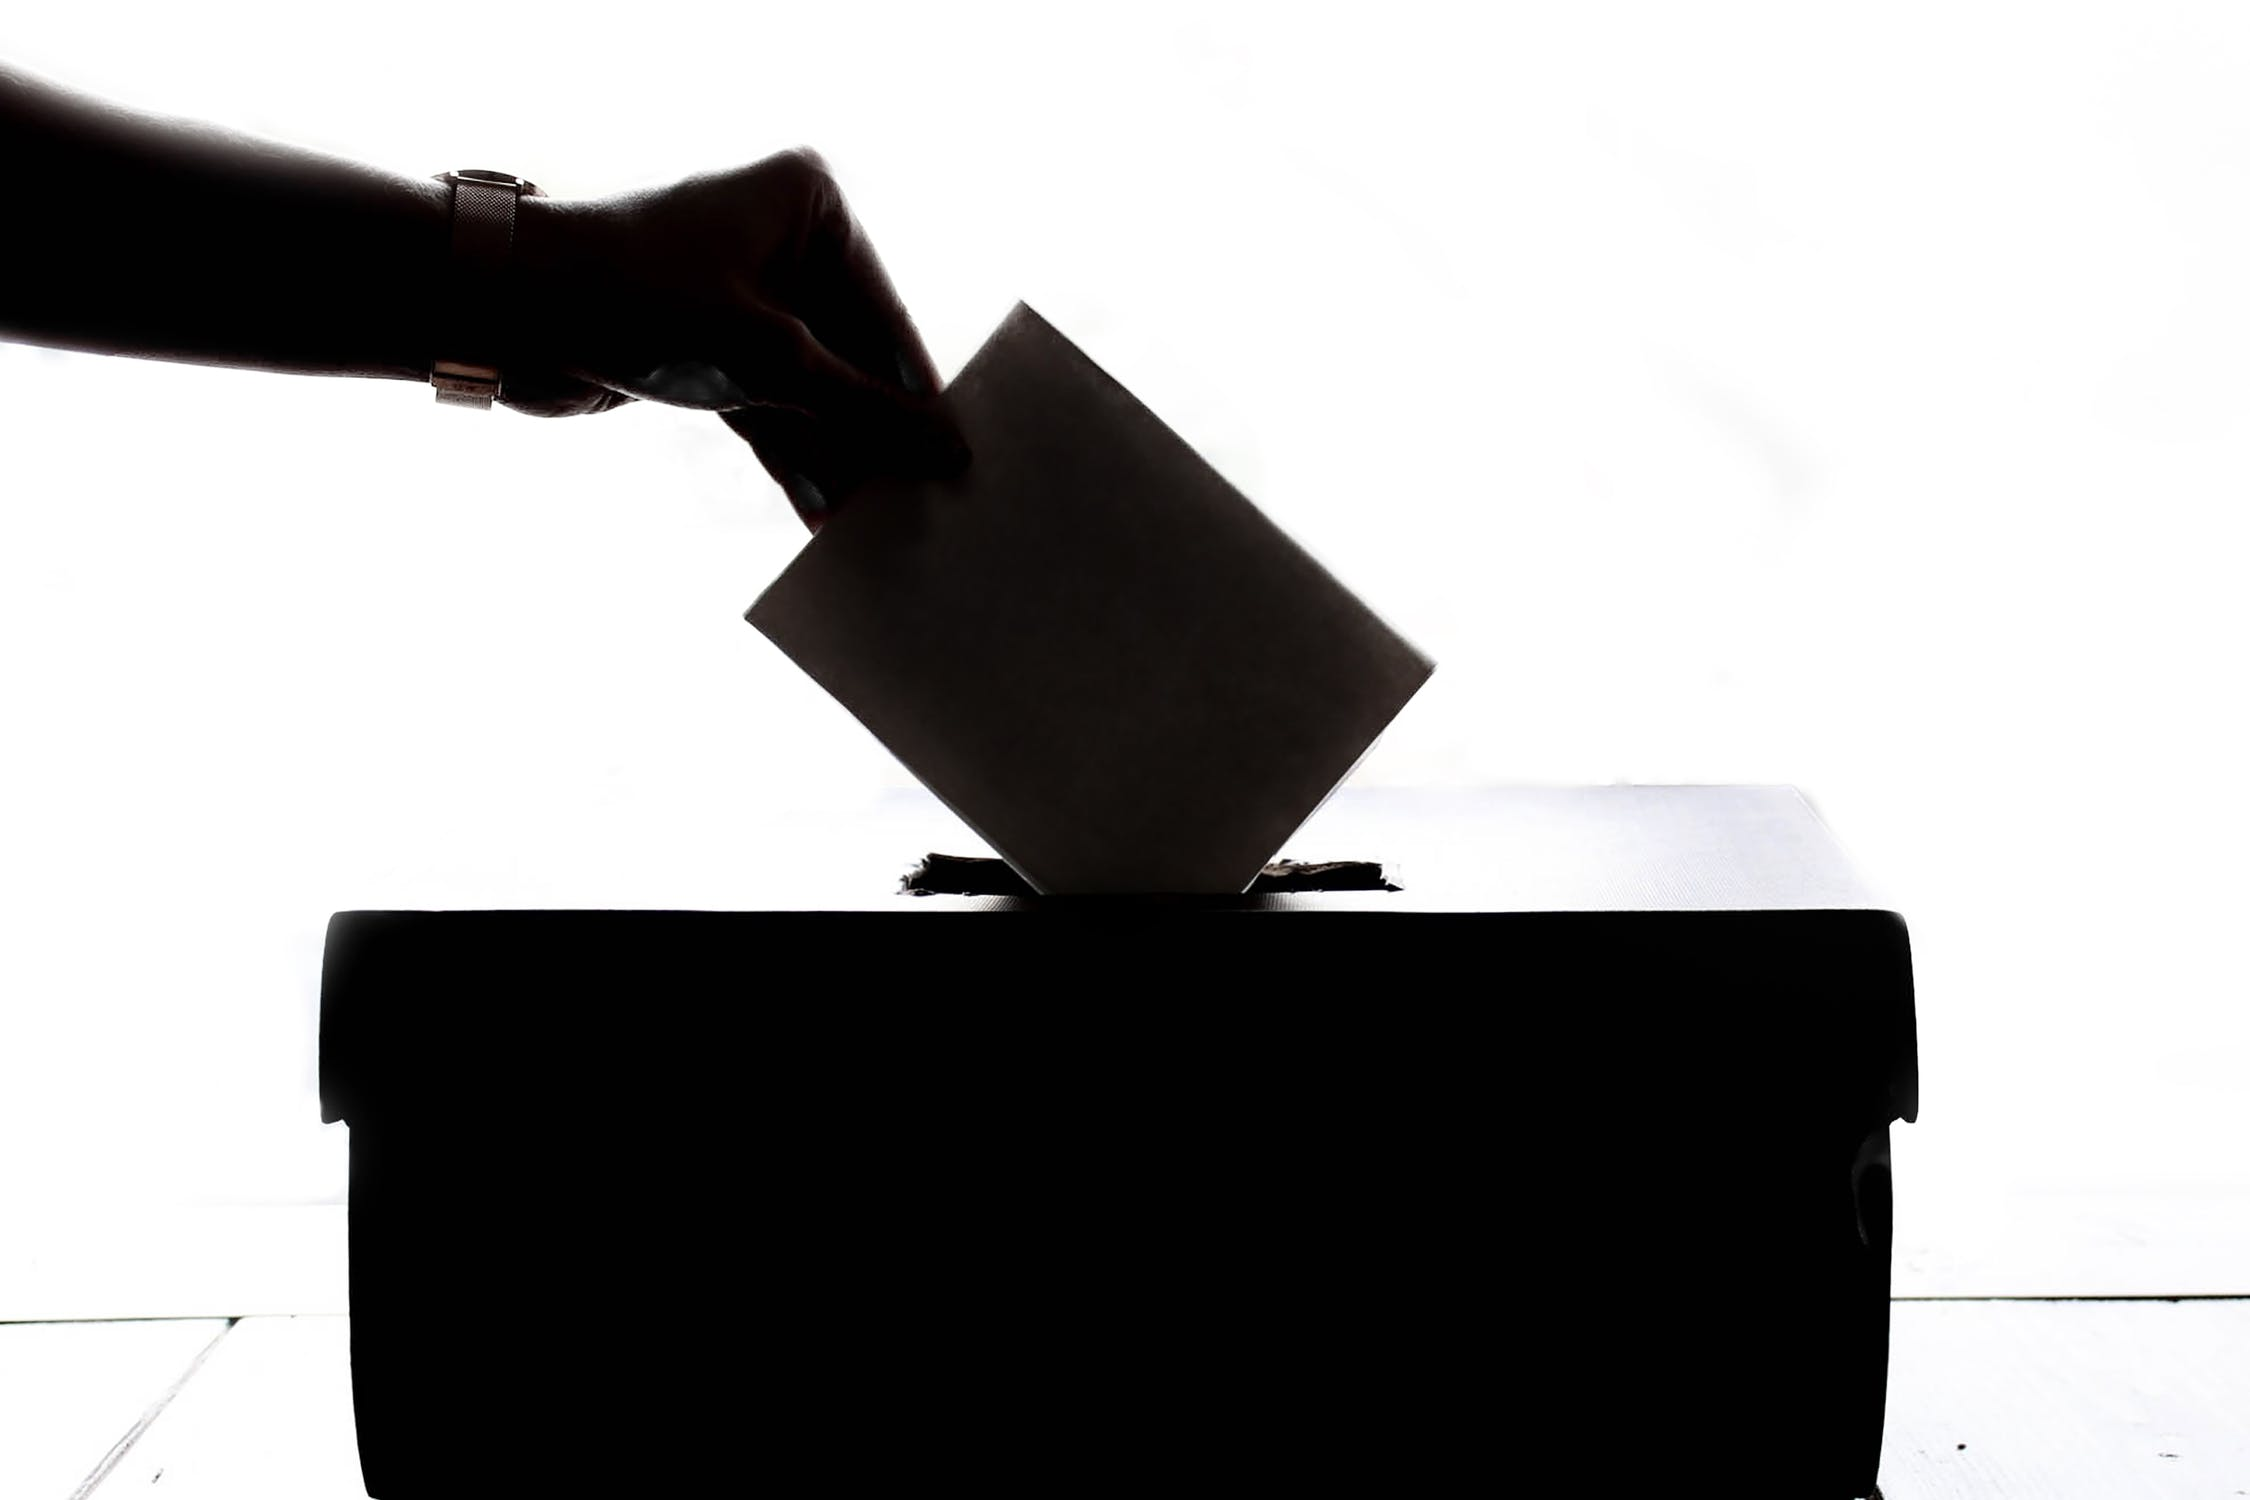 Practical | Voting and Democracy